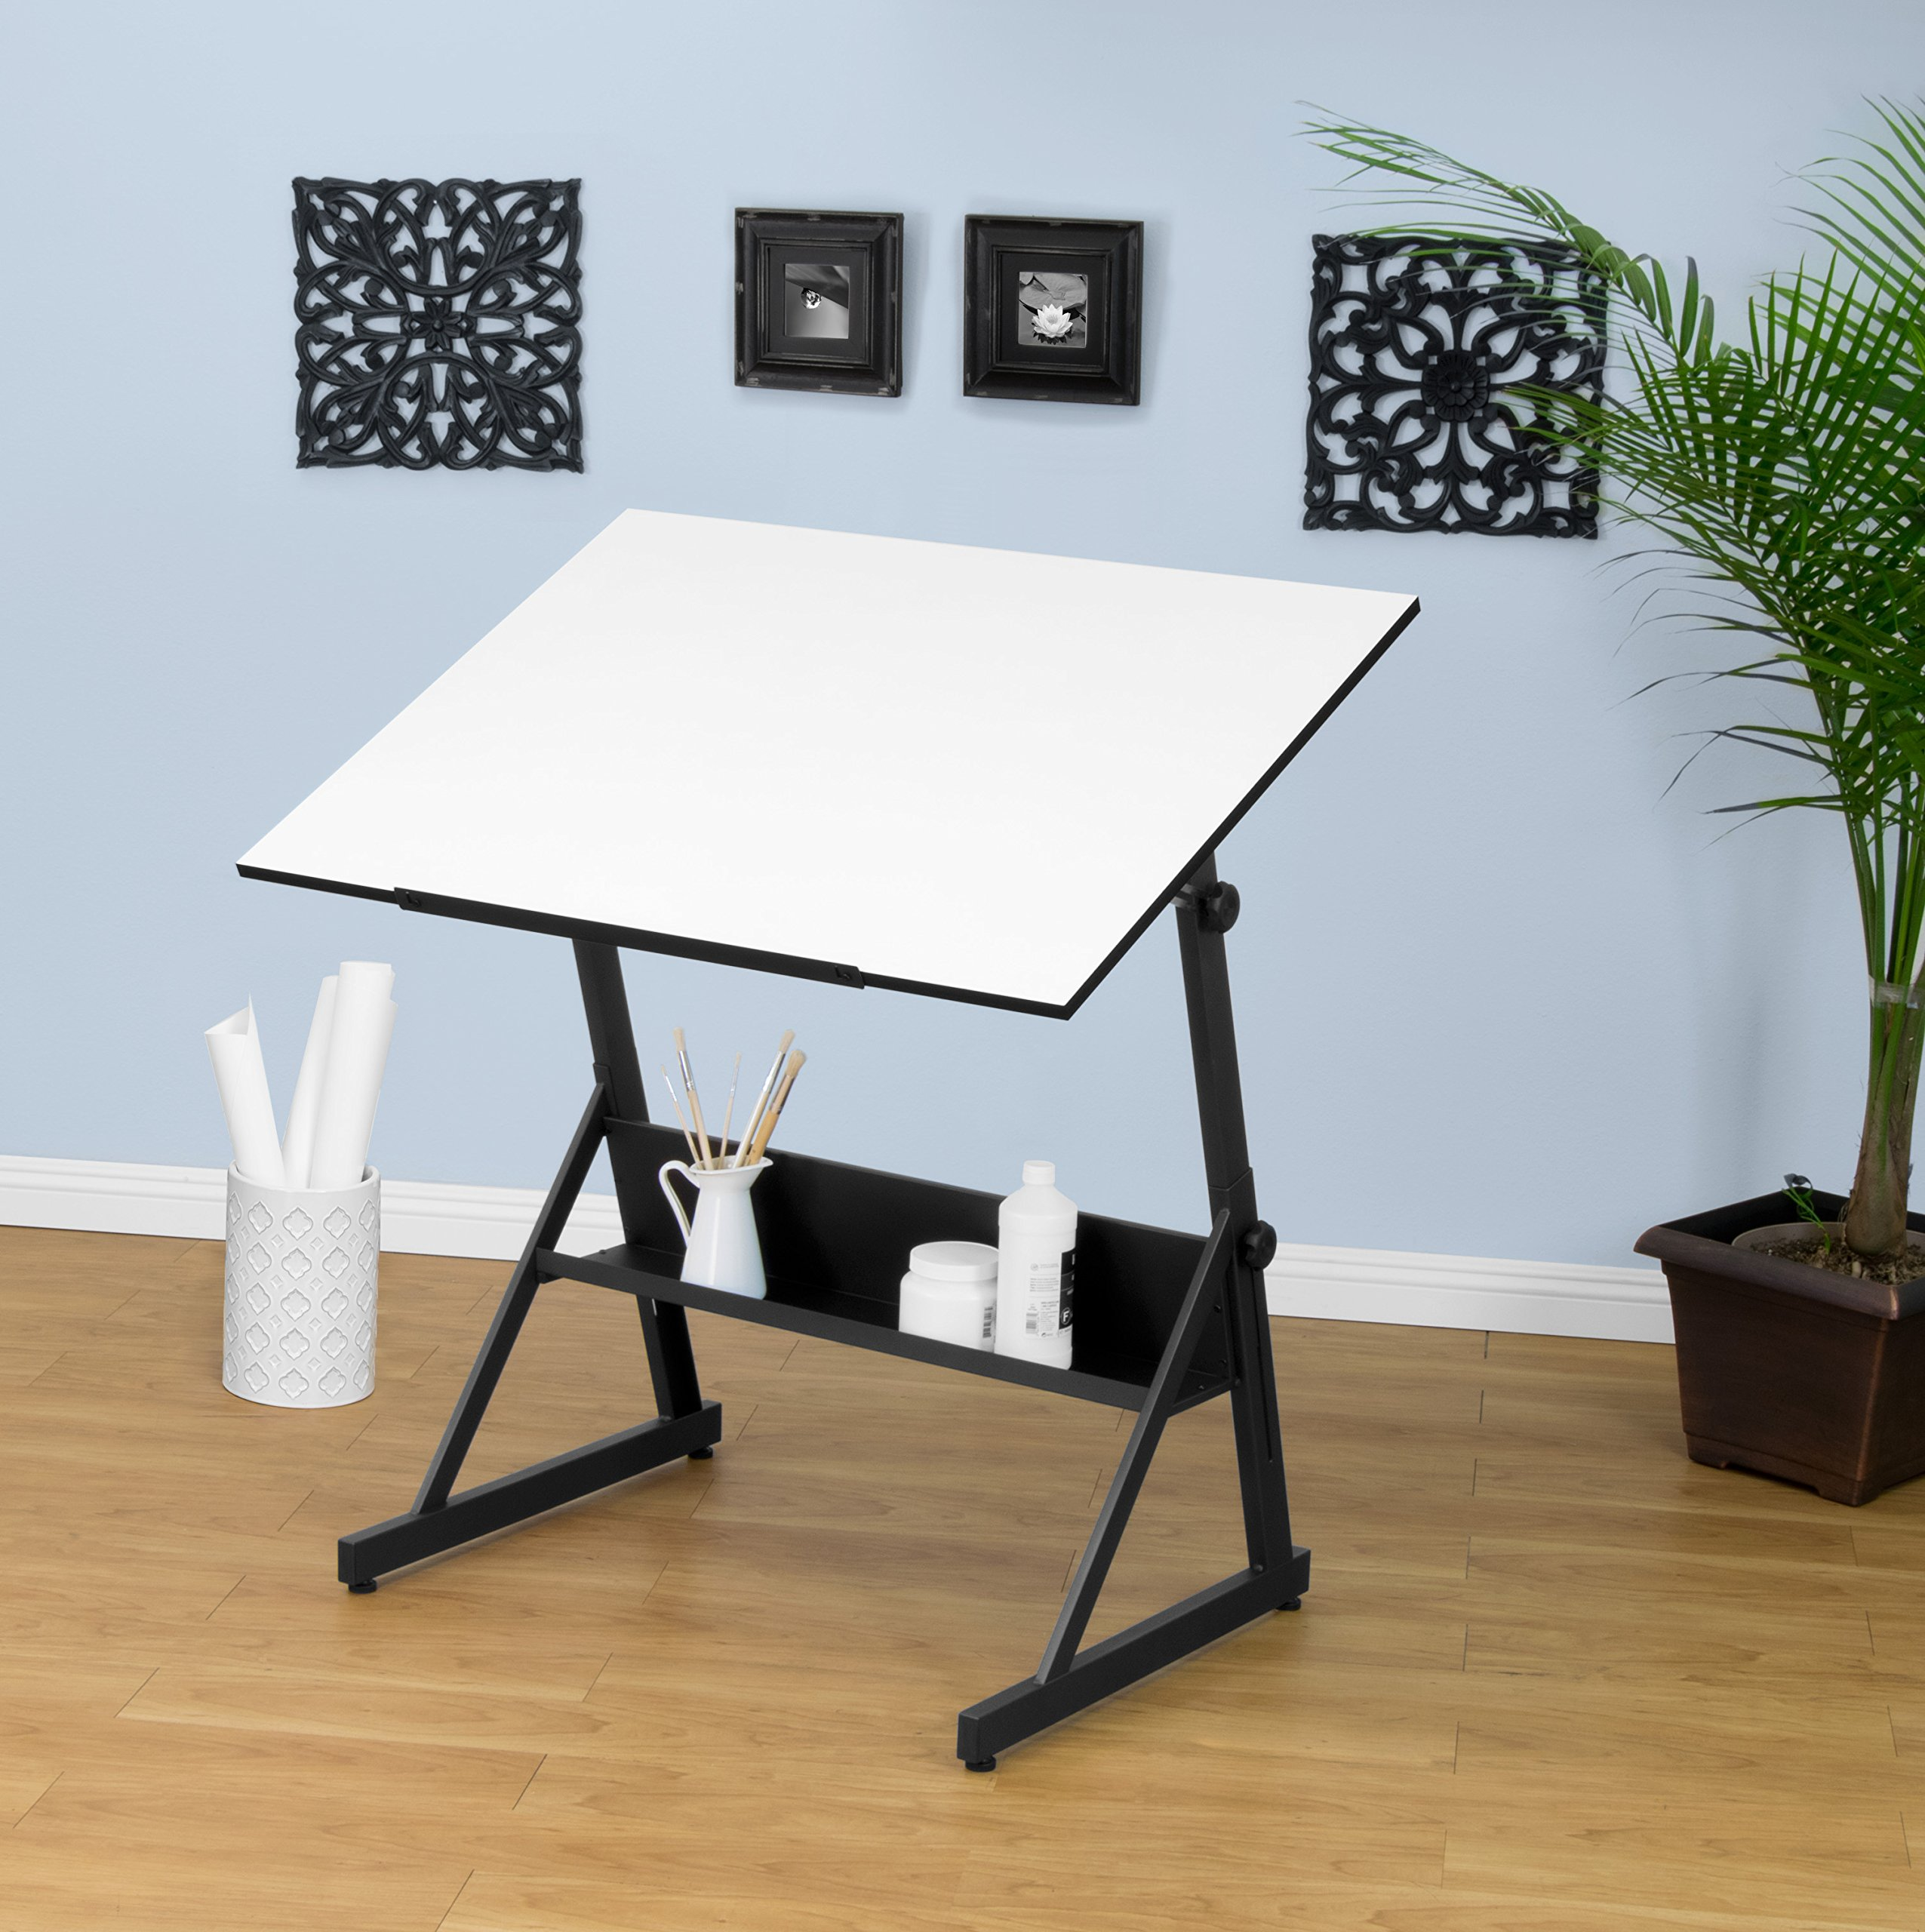 Adjustable height drafting table